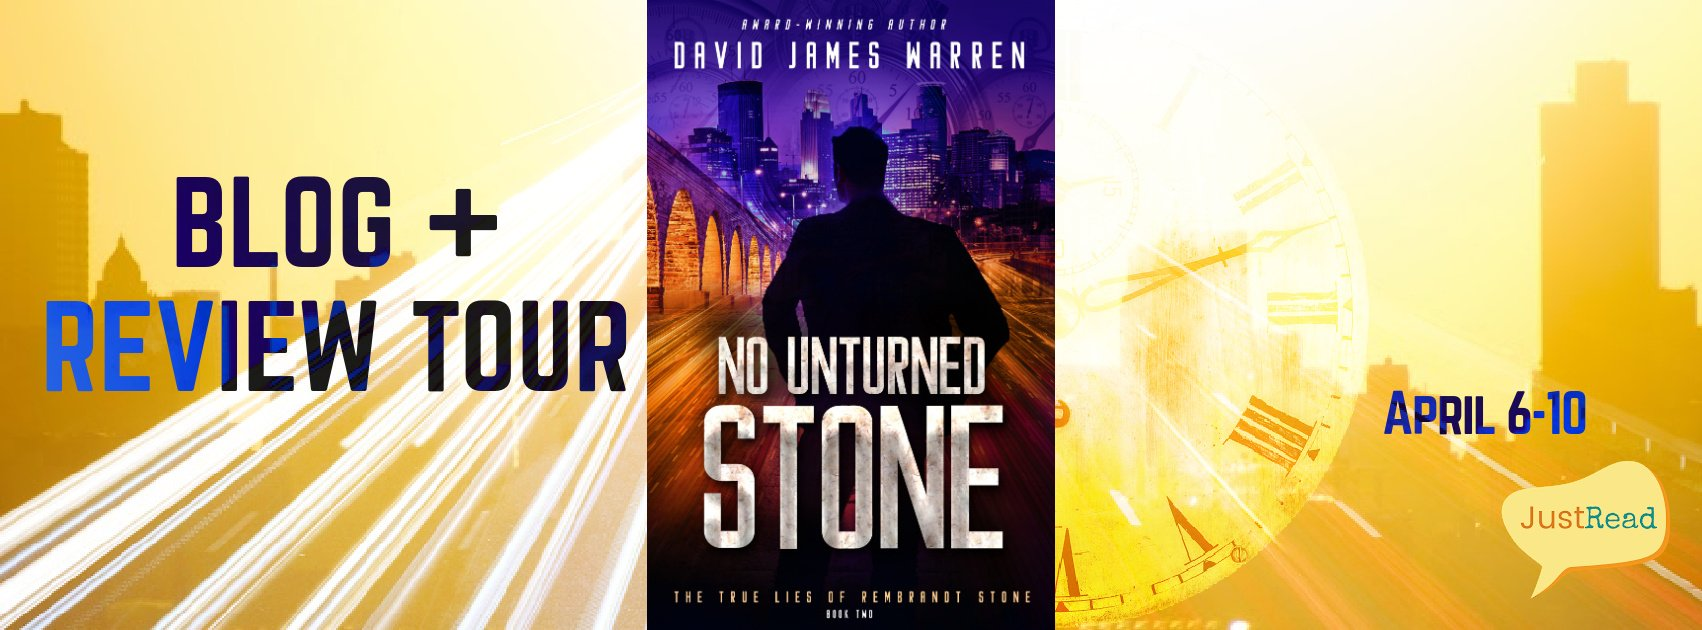 No Stone Unturned JustRead Blog + Review Tour